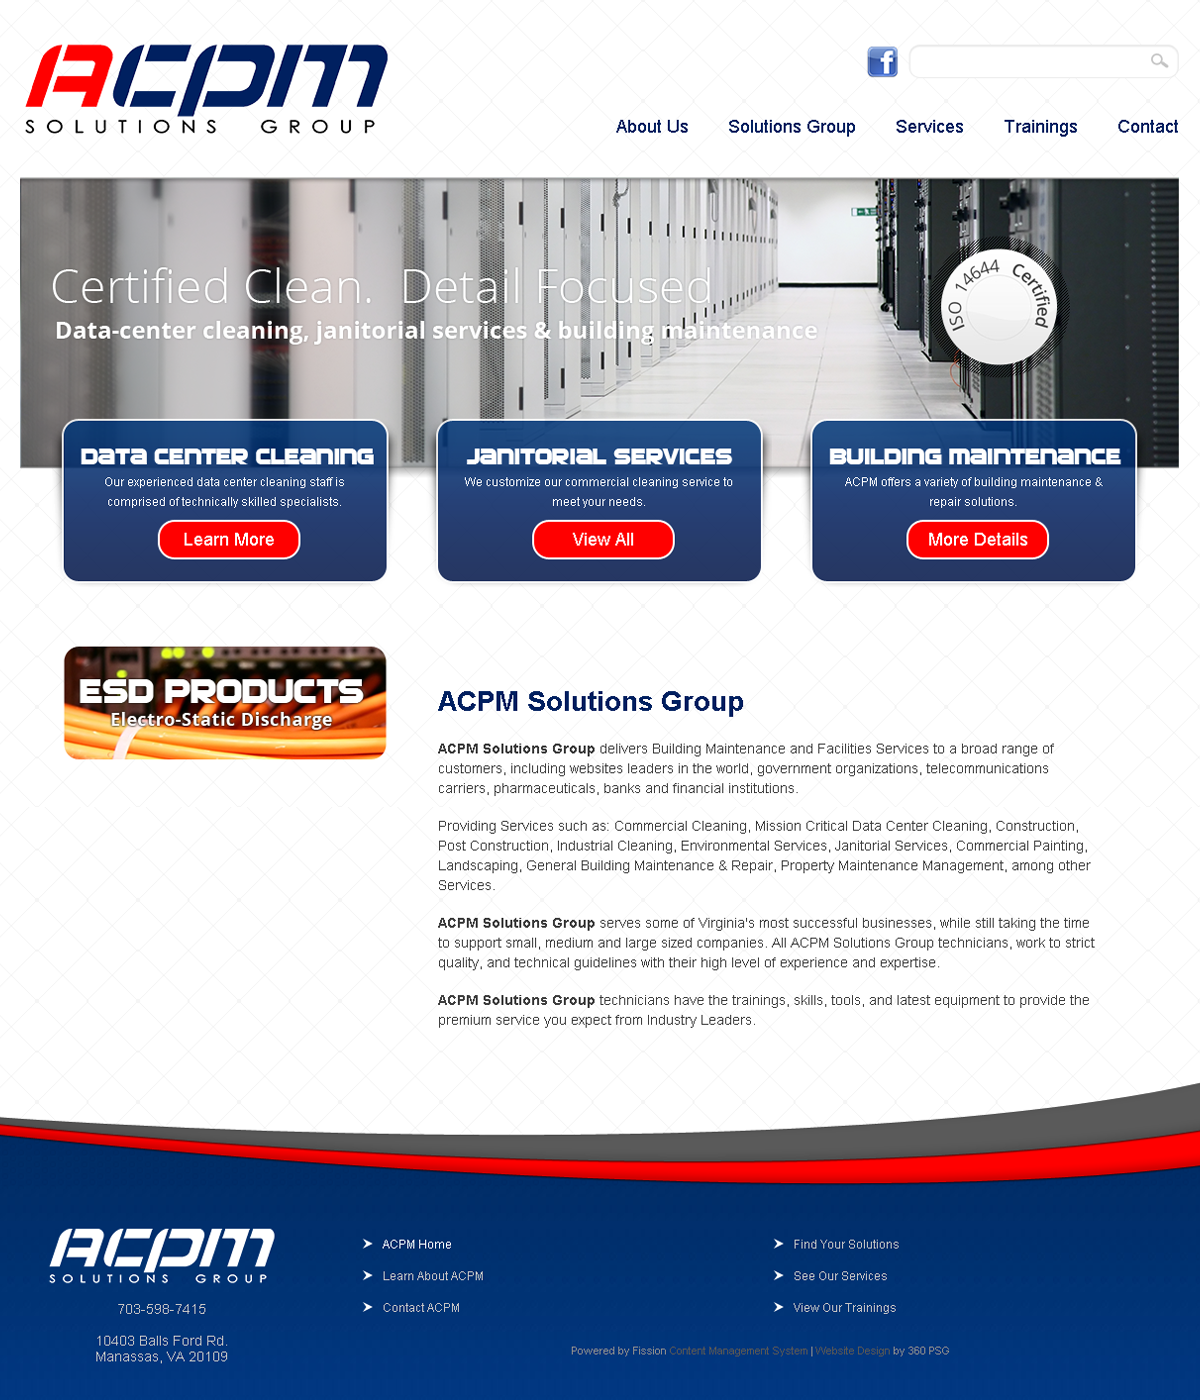 ACPM Solutions Group